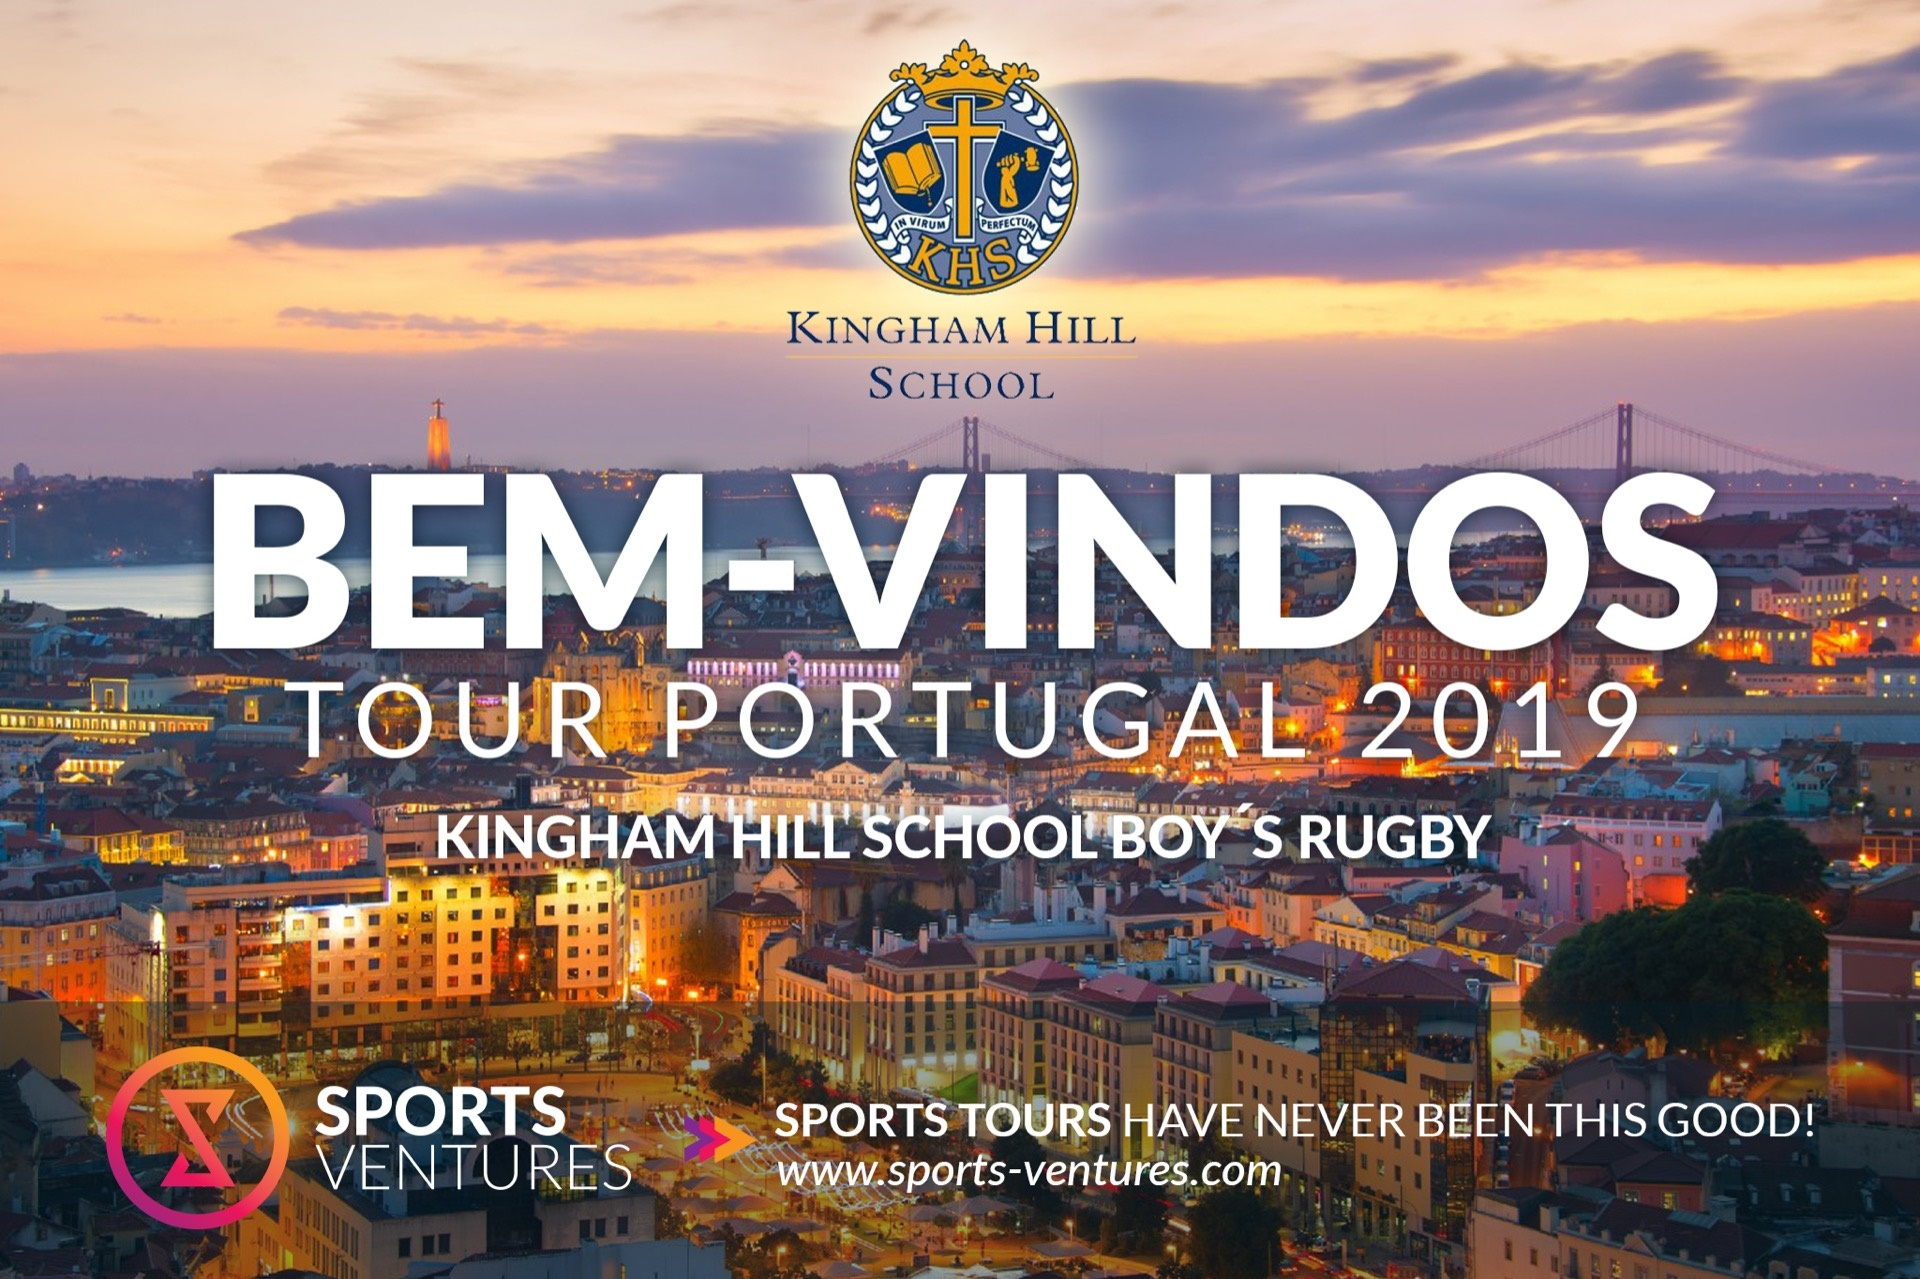 Kingham Hill-Rugby-Tour-Portugal-Sports-Ventures